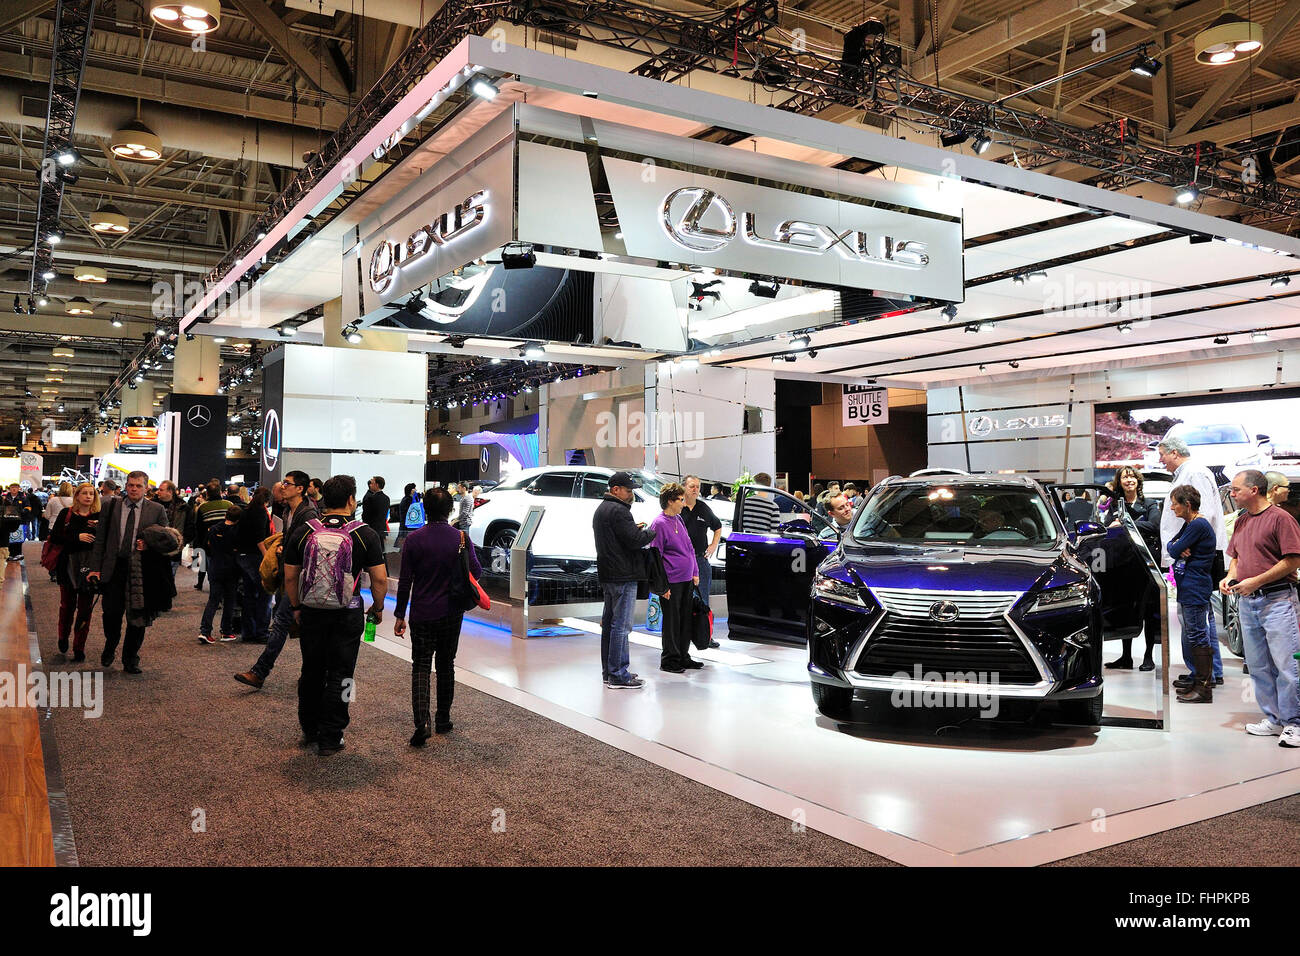 General view of the LEXUS booth at 2016 Toronto Autoshow at the Toronto Metro Convention Centre, Toronto, Ontario, - Stock Image